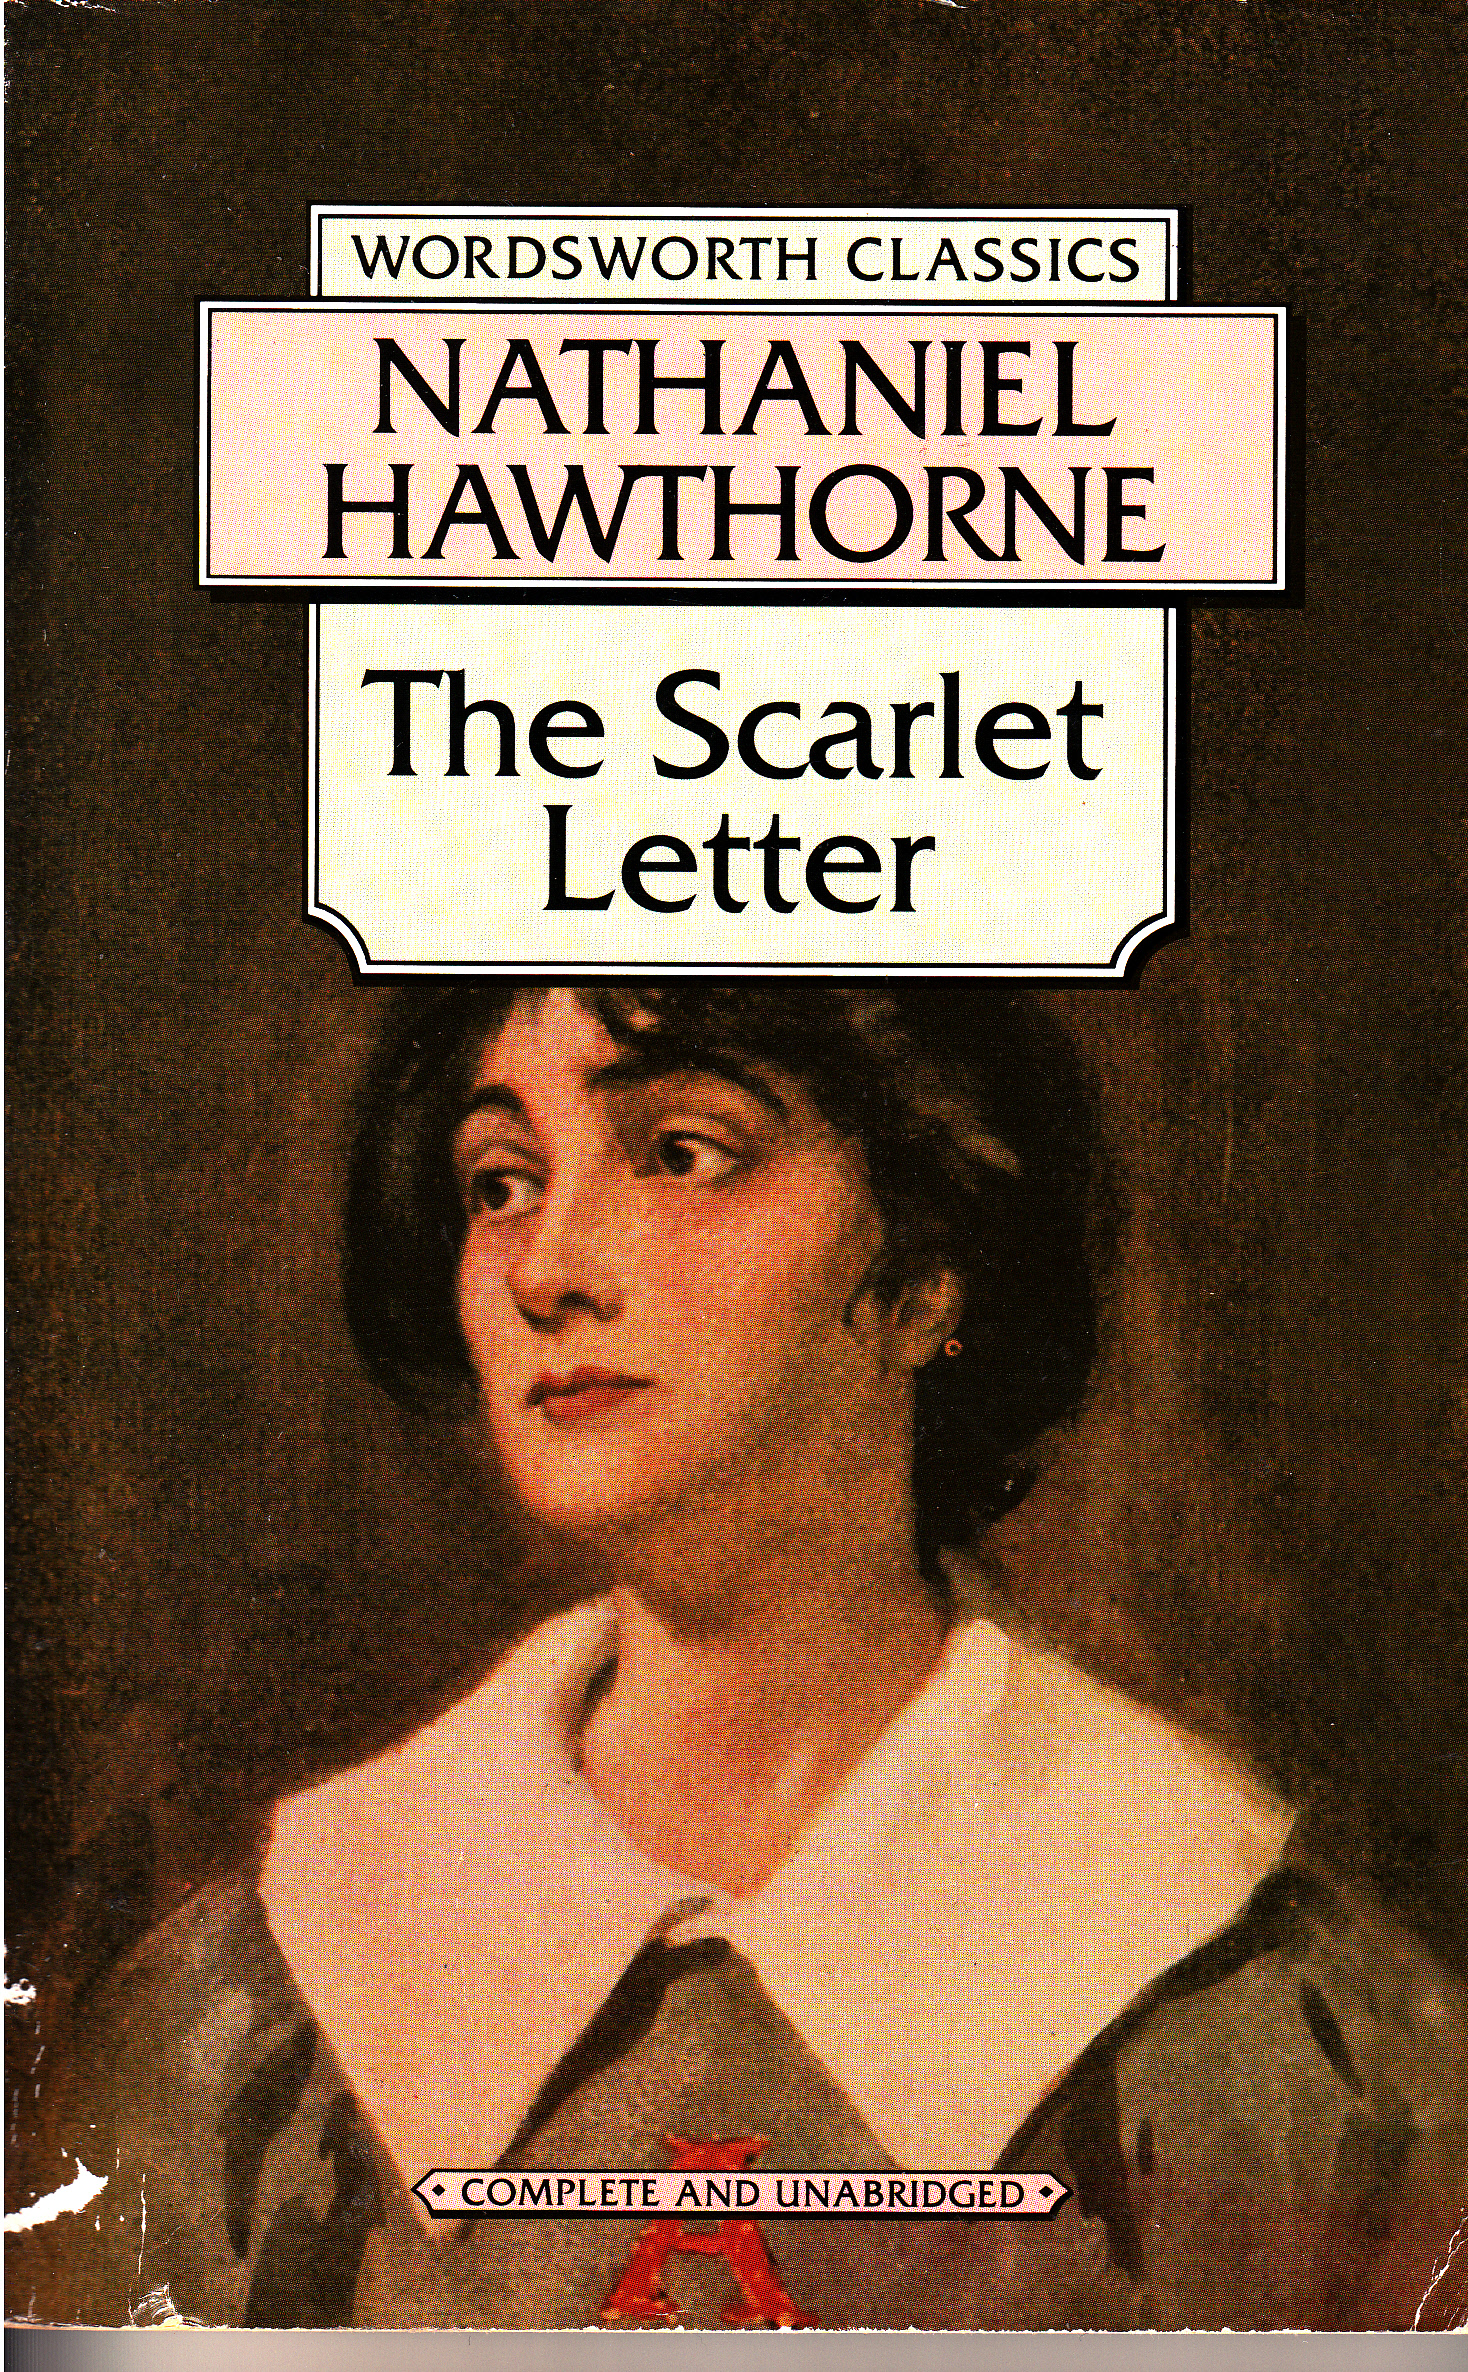 The scarlet letter by nathaniel hawthorne anz litlovers litblog the scarlet letter by nathaniel hawthorne madrichimfo Images